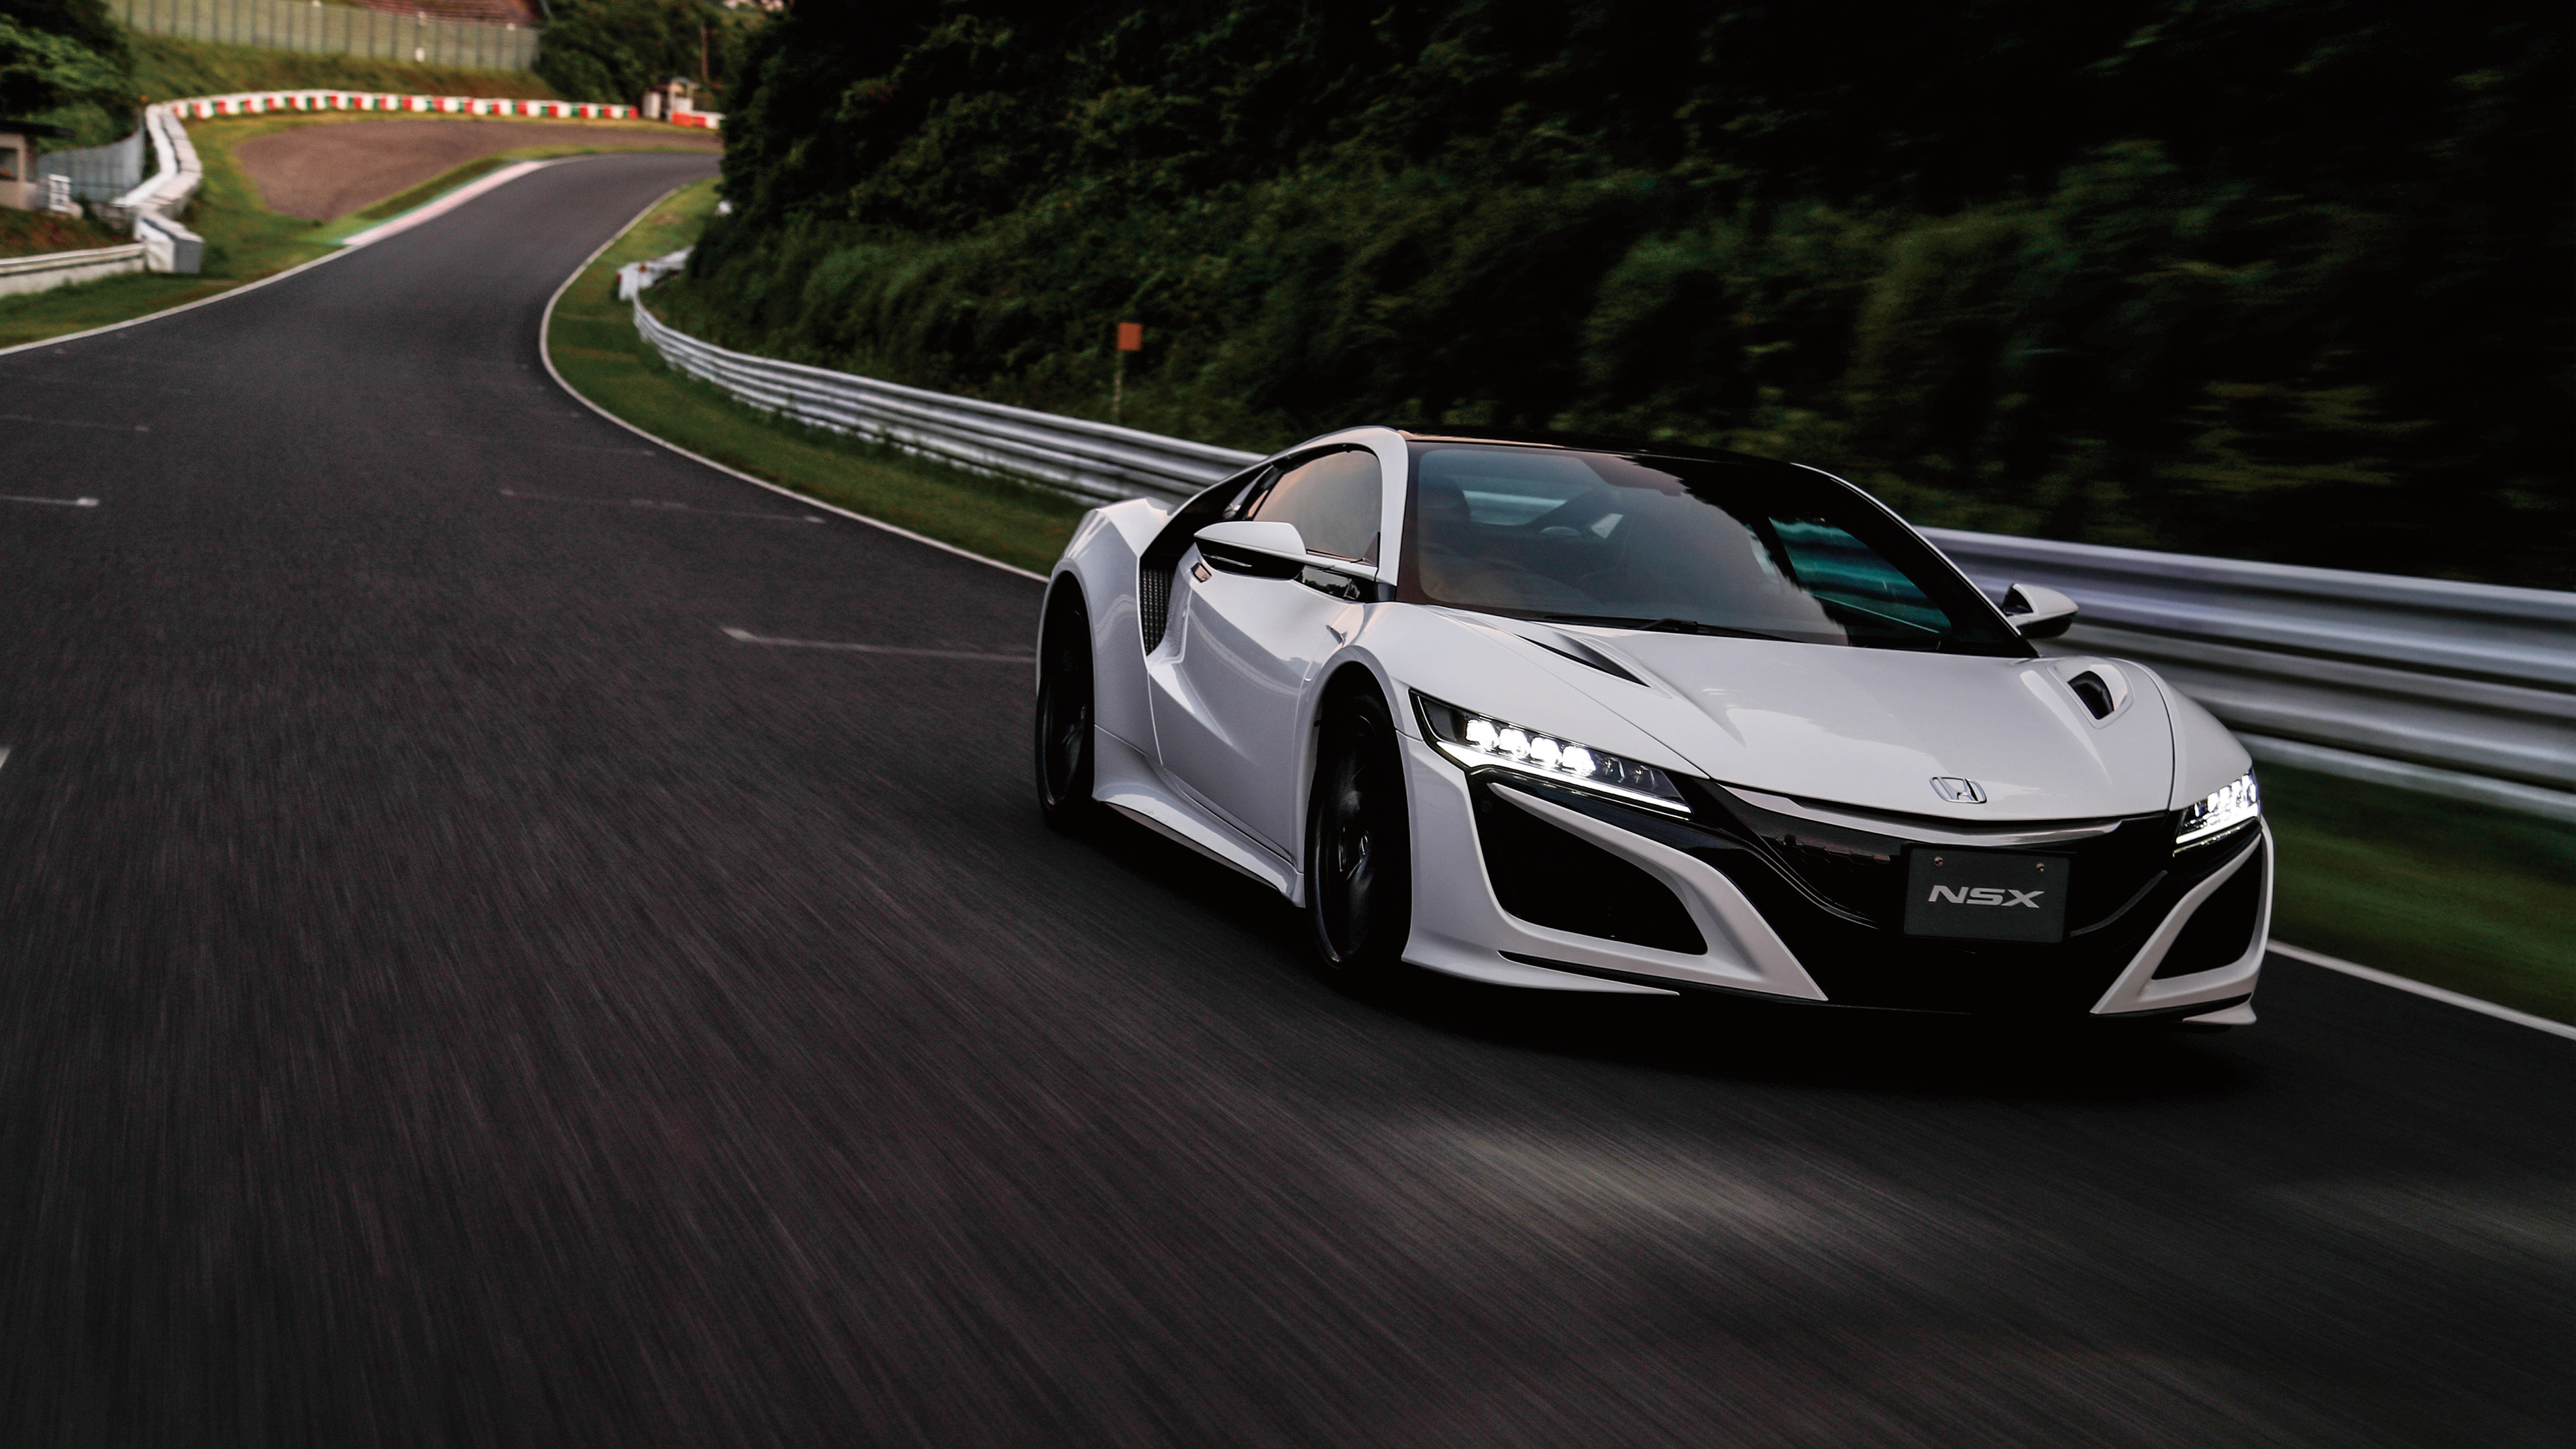 Honda Nsx Supercar Wallpaper Hd Car Wallpapers